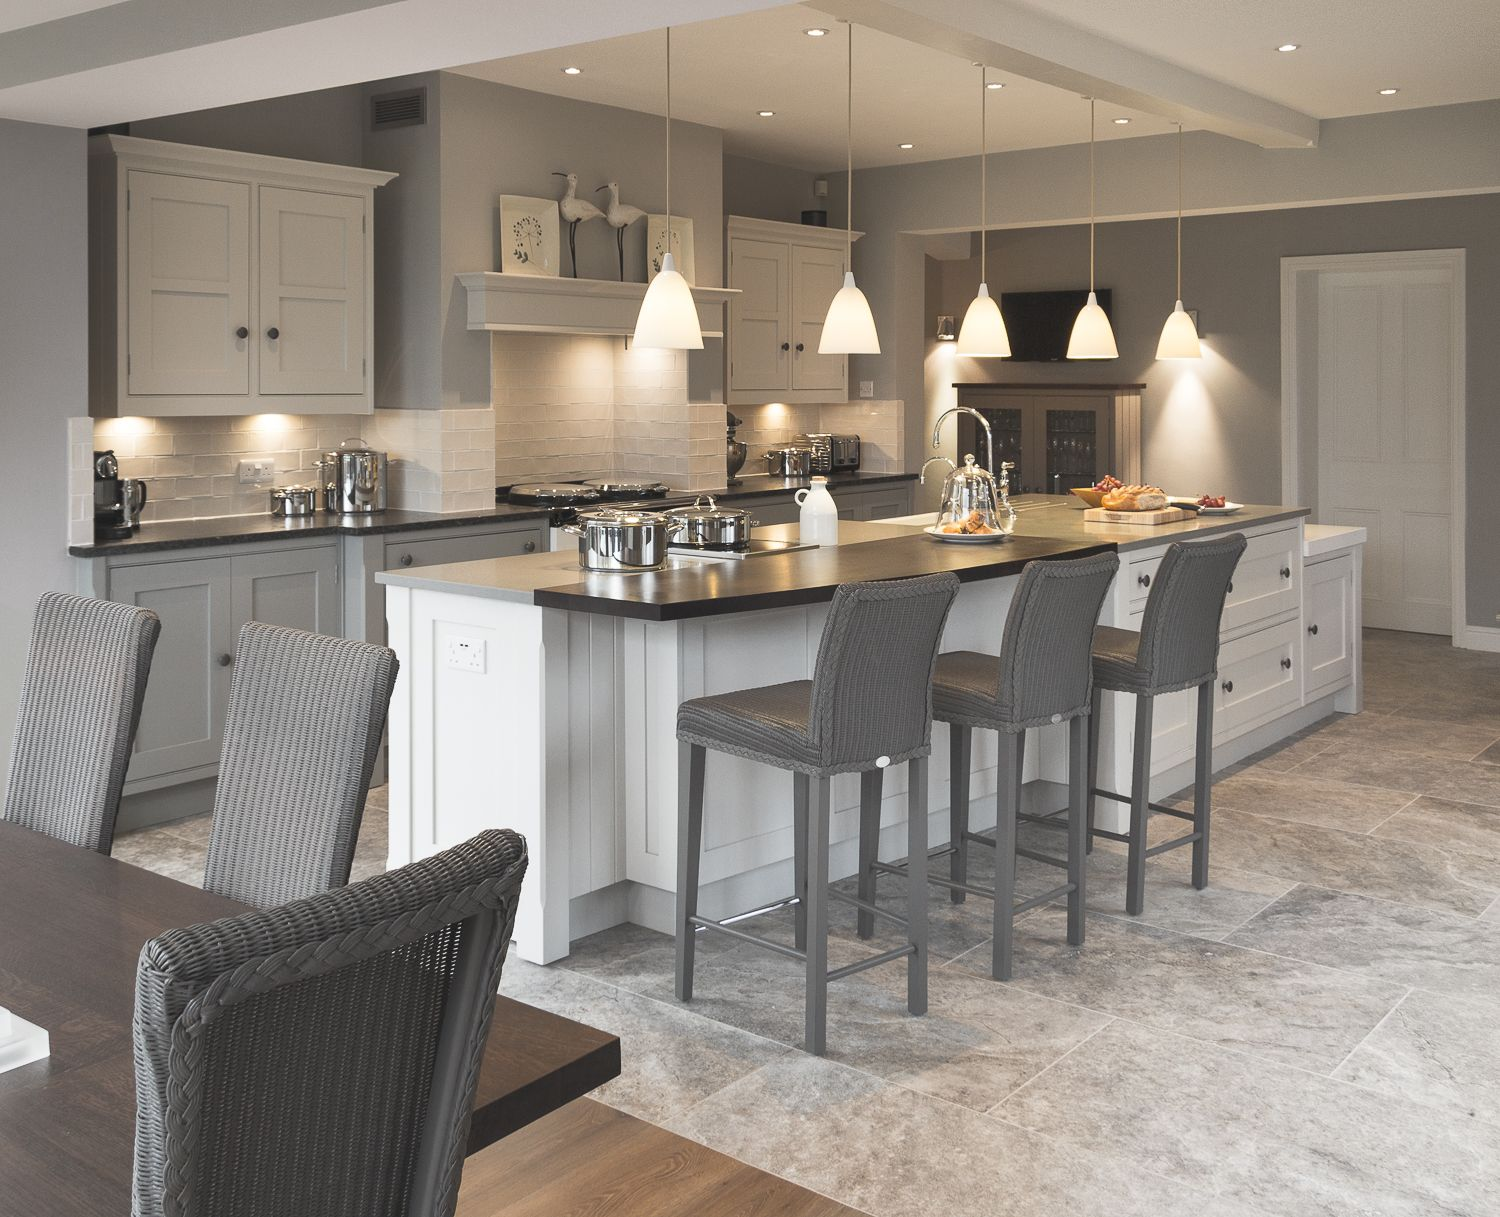 Pinterest Cabinets Kitchen A Bespoke Shaker Kitchen Designed By Cheshire Furniture